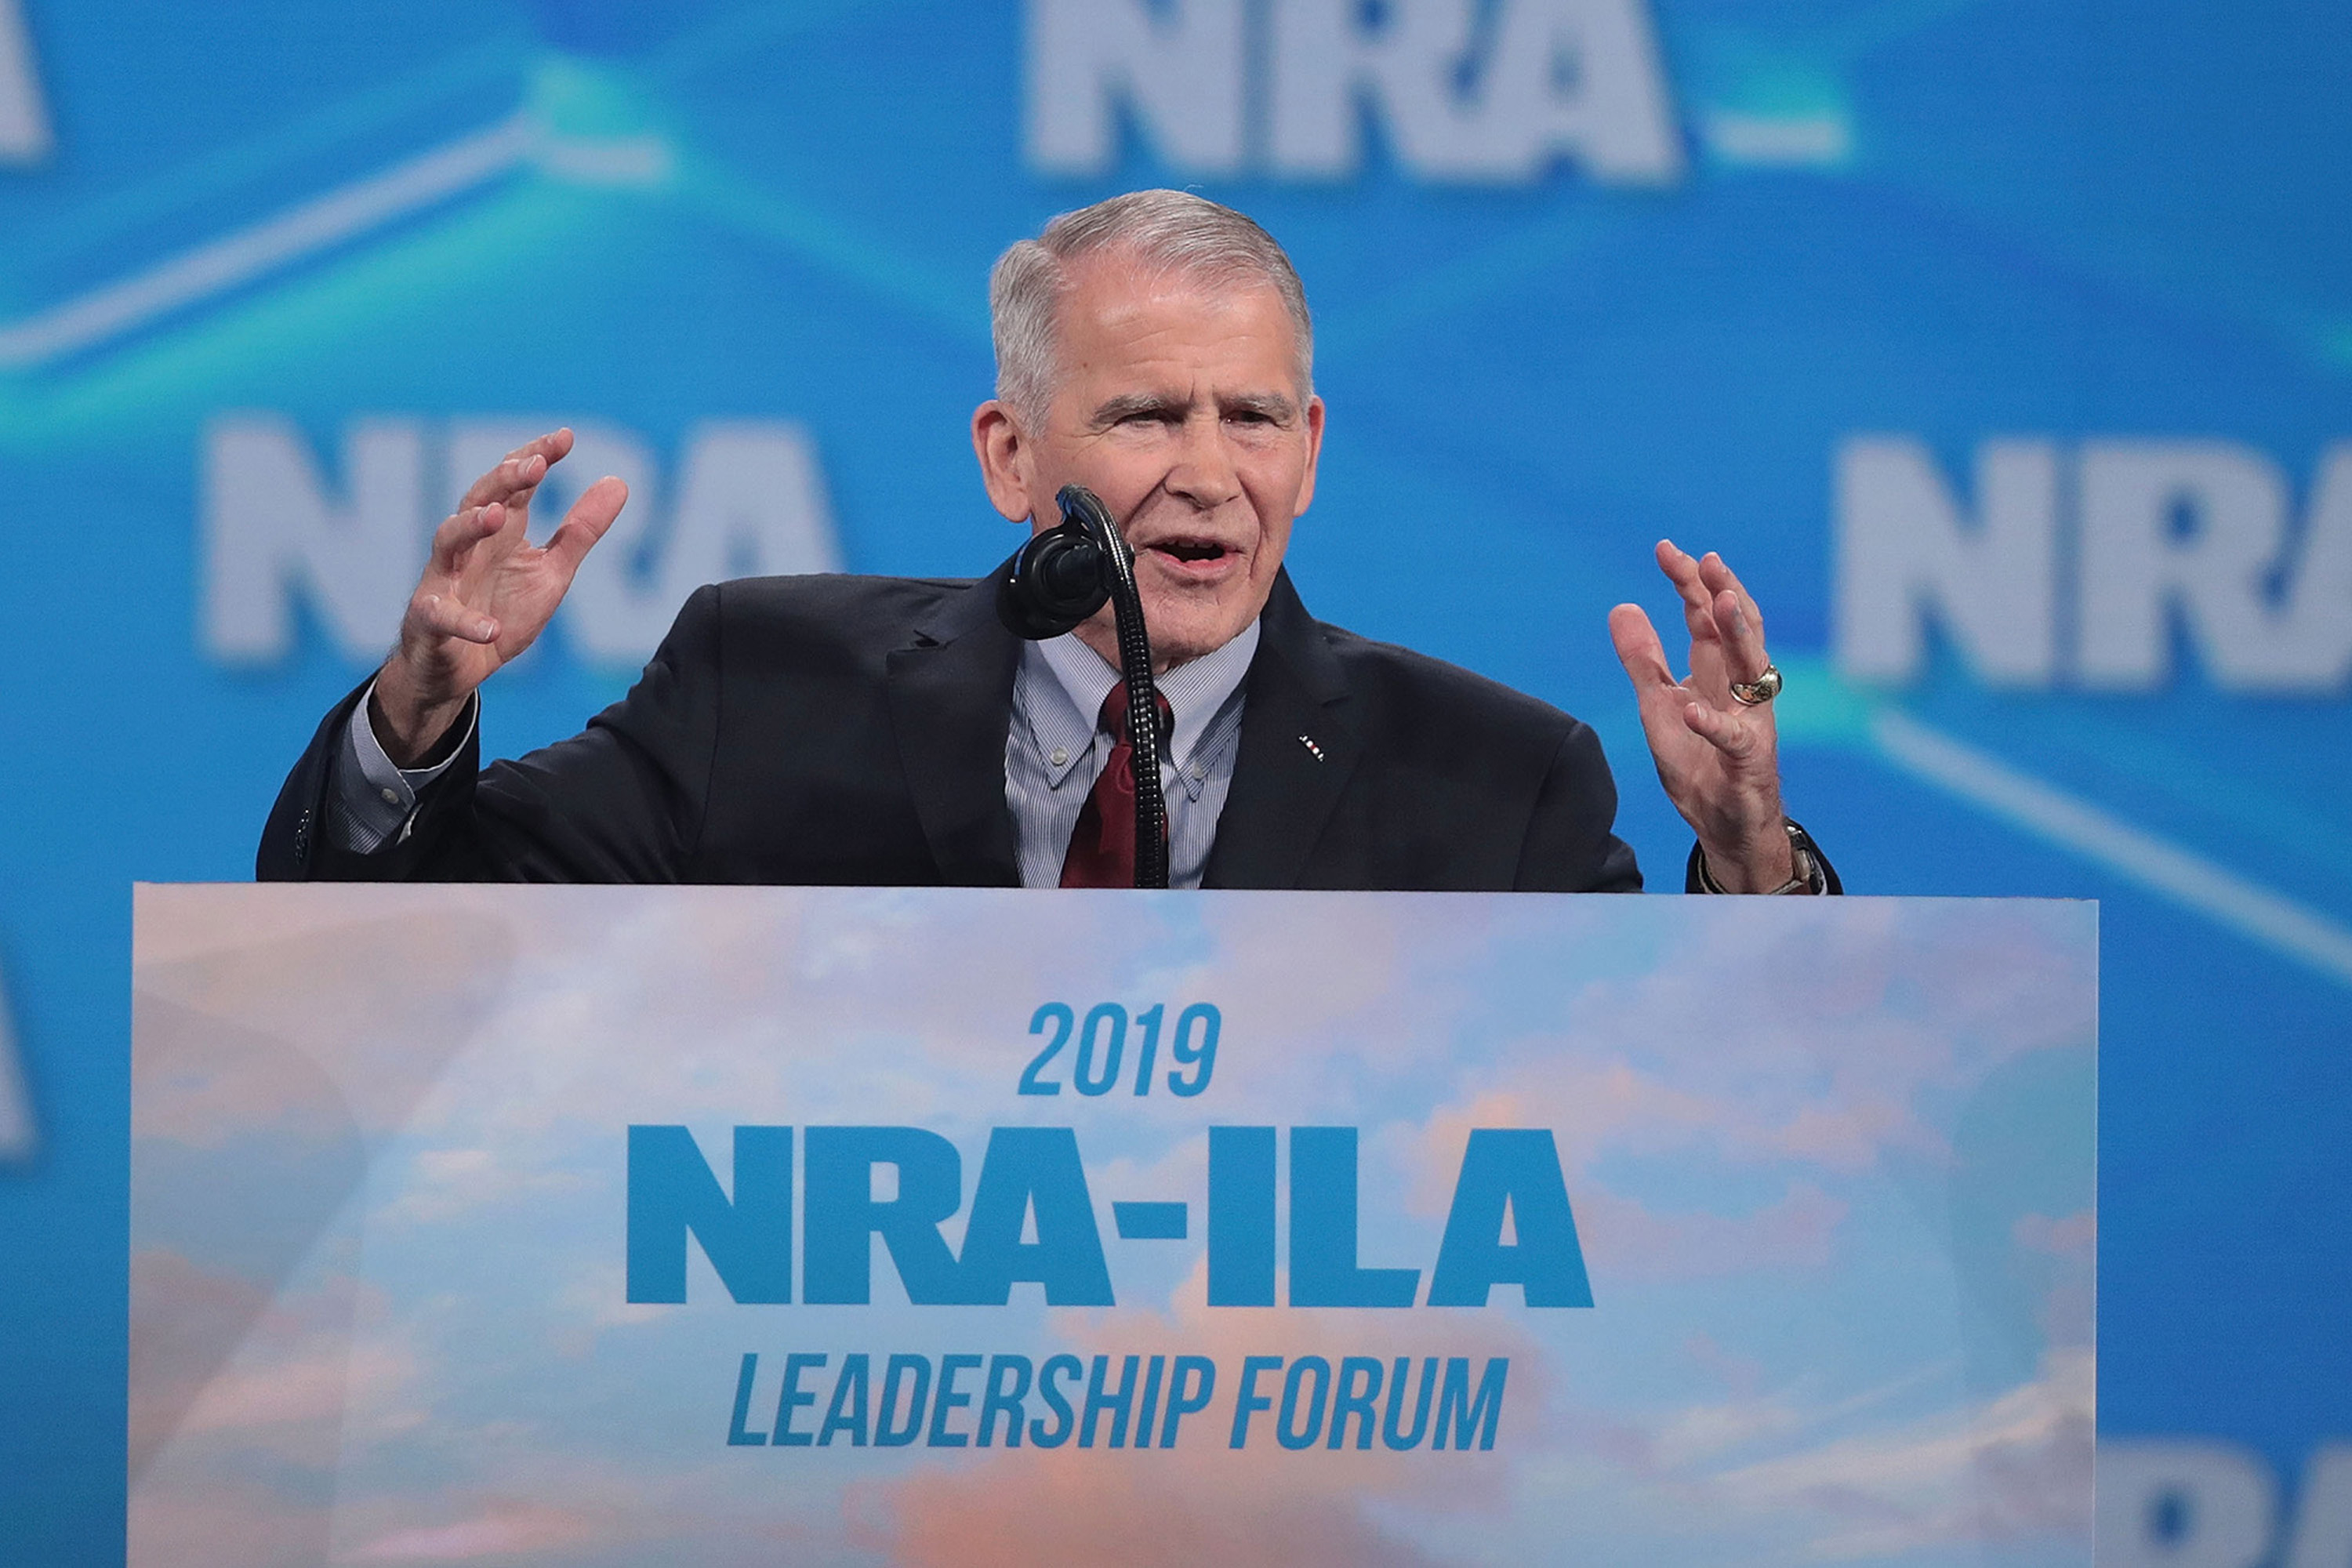 Oliver North is subpoenaed by New York in NRA spending probe - Personal Liberty®